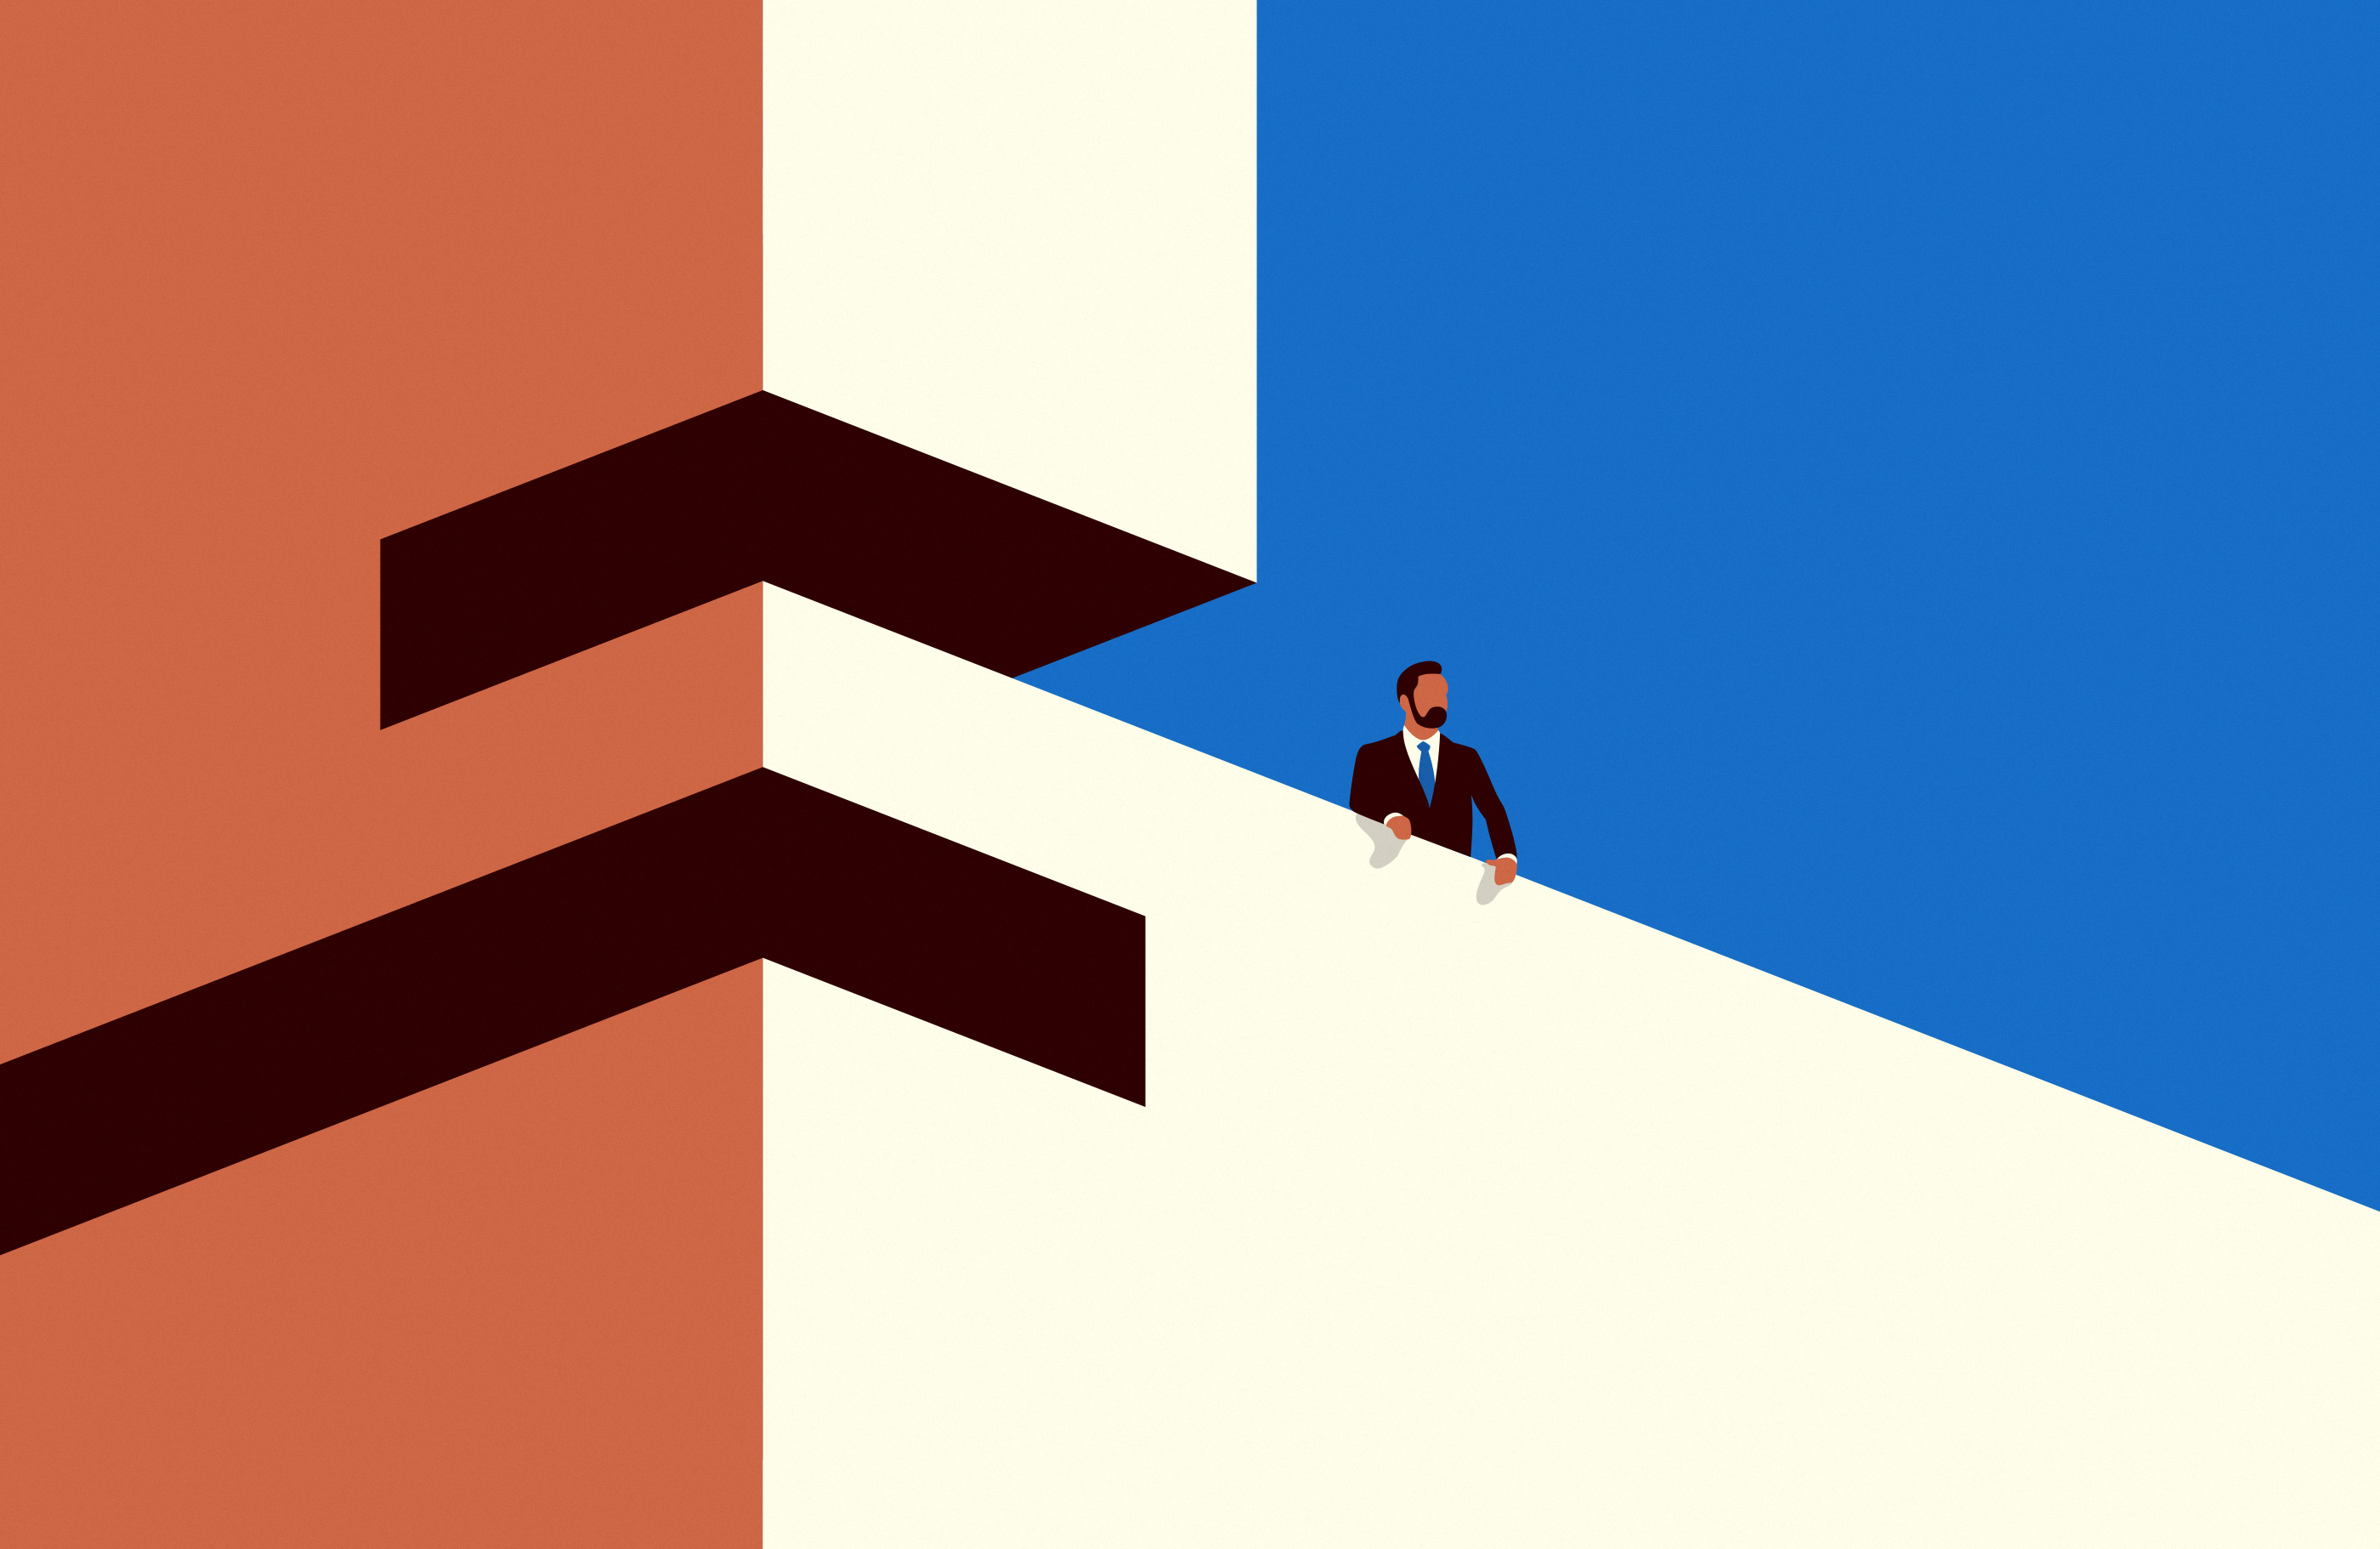 Man-Standing-on-top-of-house-Illustration-